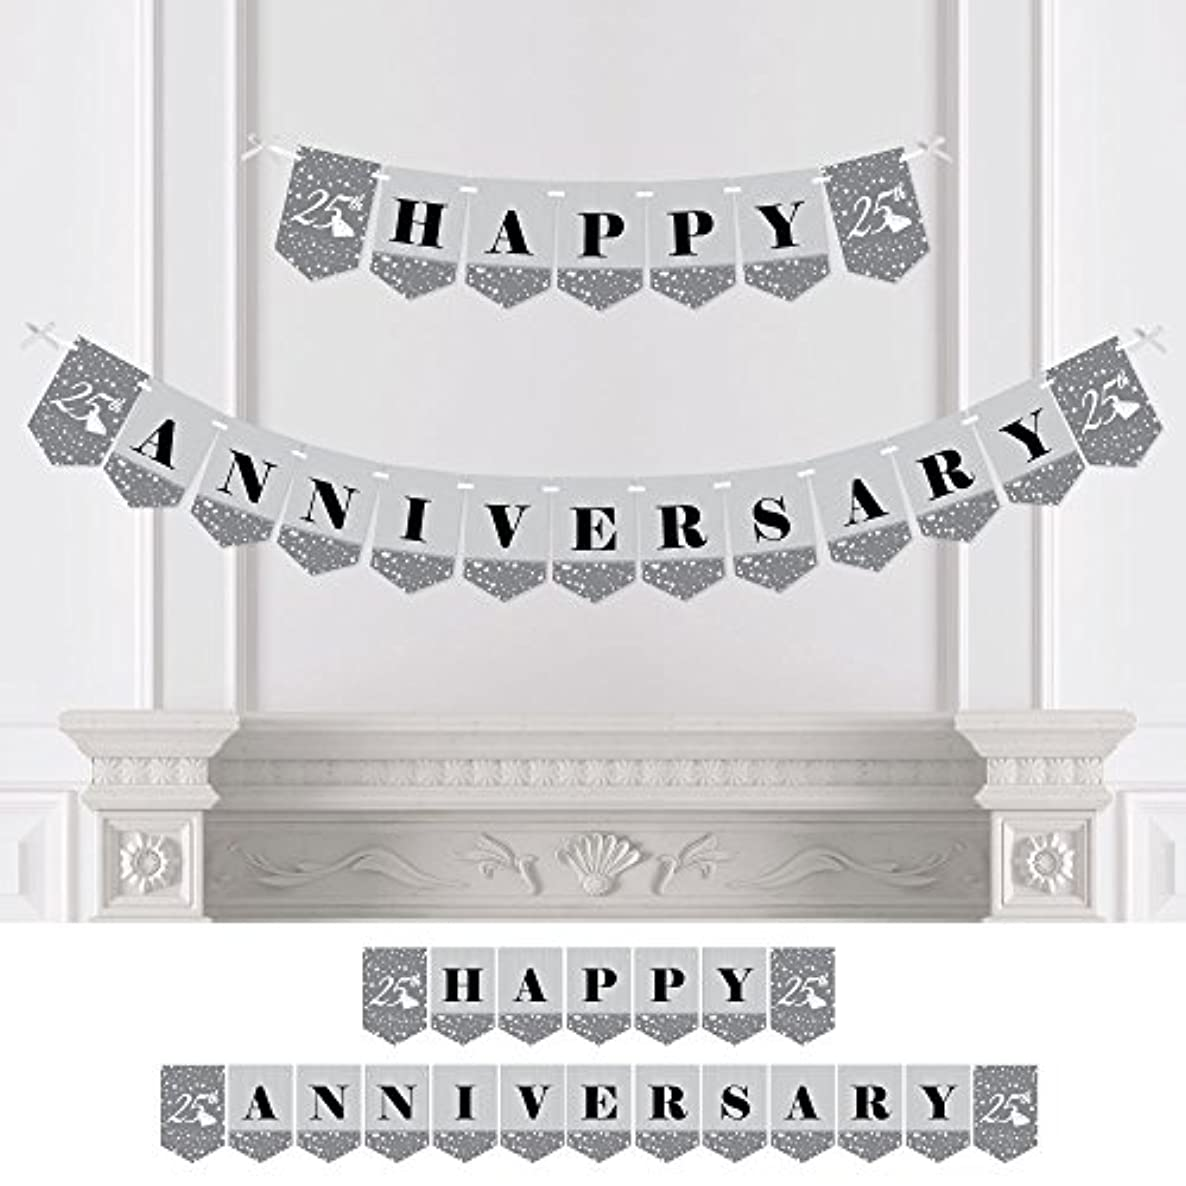 Big Dot of Happiness 25th Anniversary - Party Bunting Banner - Silver Party Decorations - Happy Anniversary